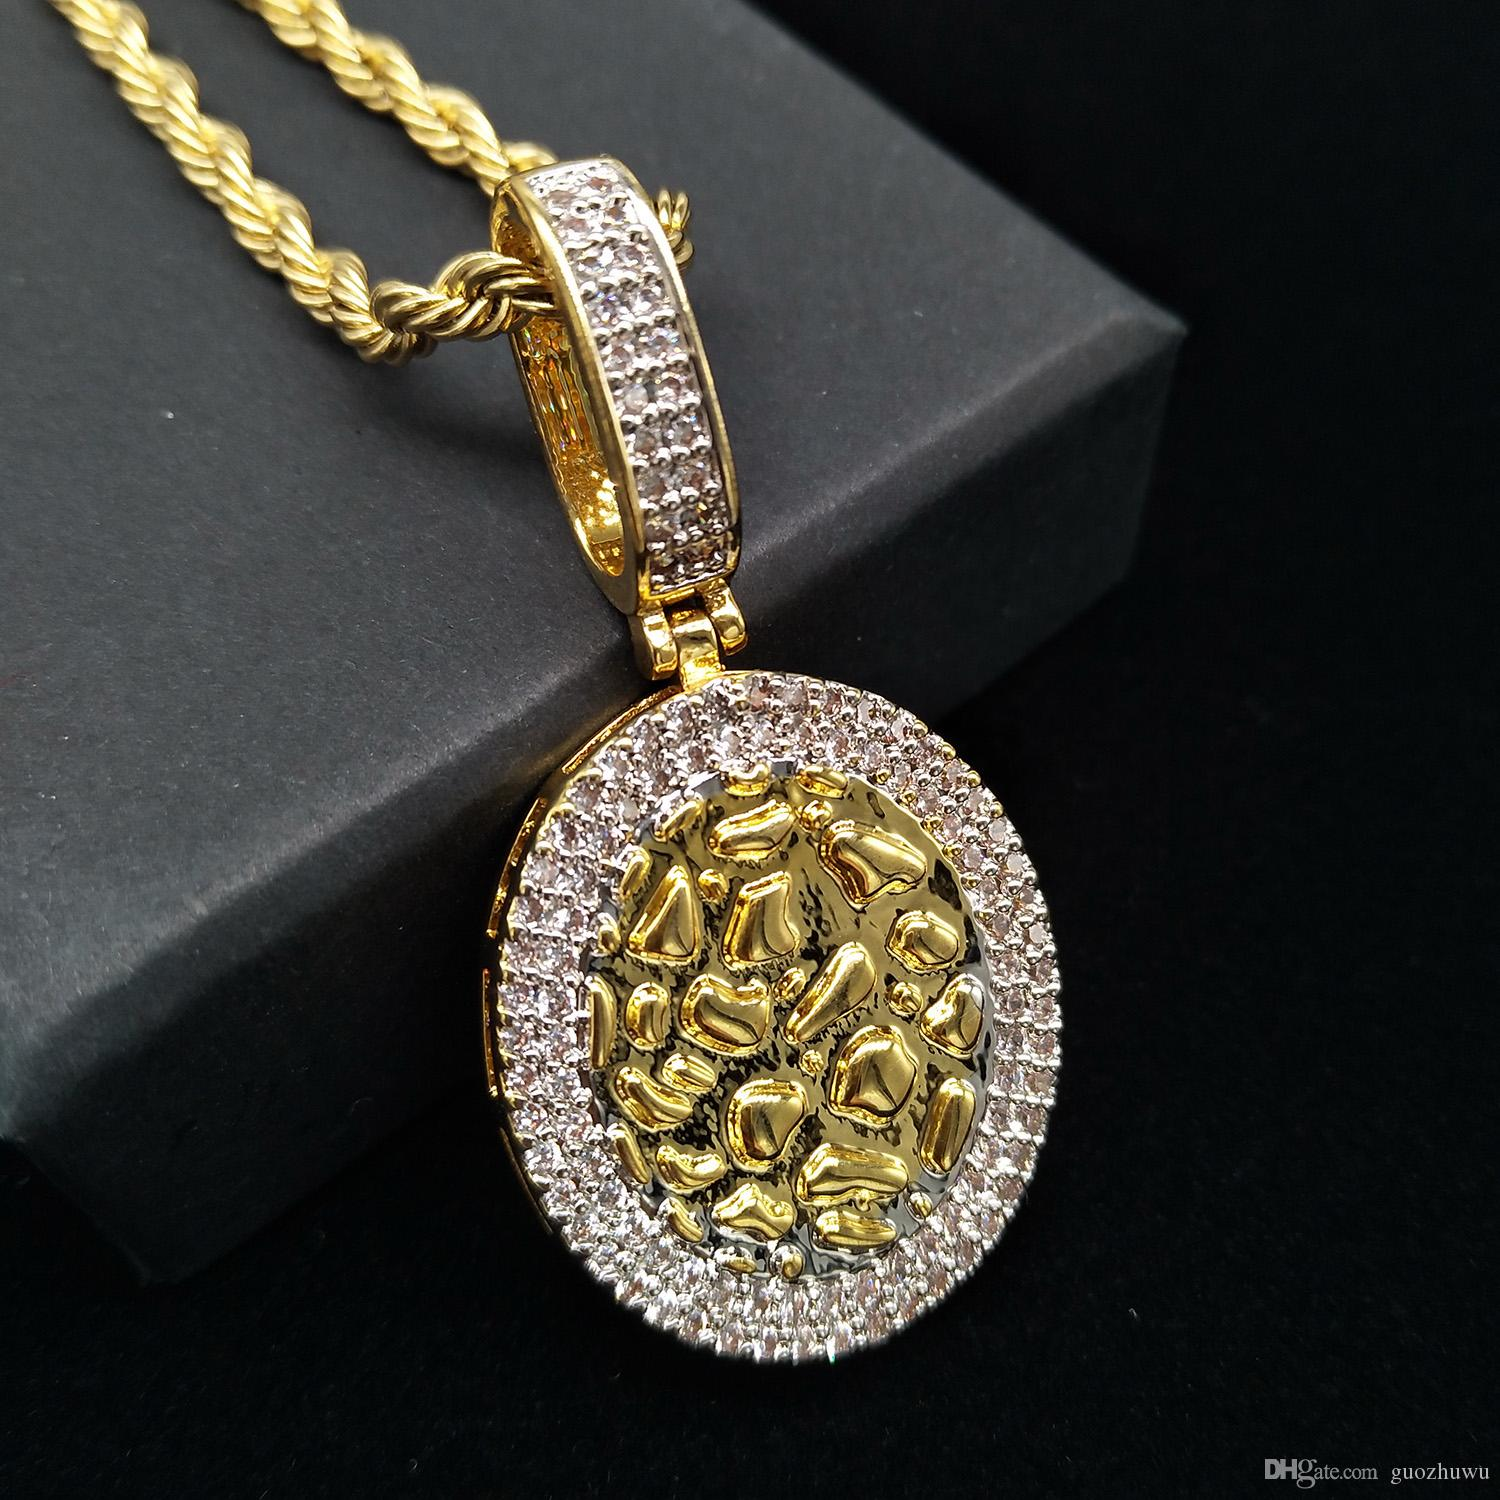 18K Gold & White Gold Plated Cubic Zirconia Round Gold Bullion Pendant Chain Necklace 24 inch Hip Hop Punk Rock Rapper Jewelry Gifts for Guy